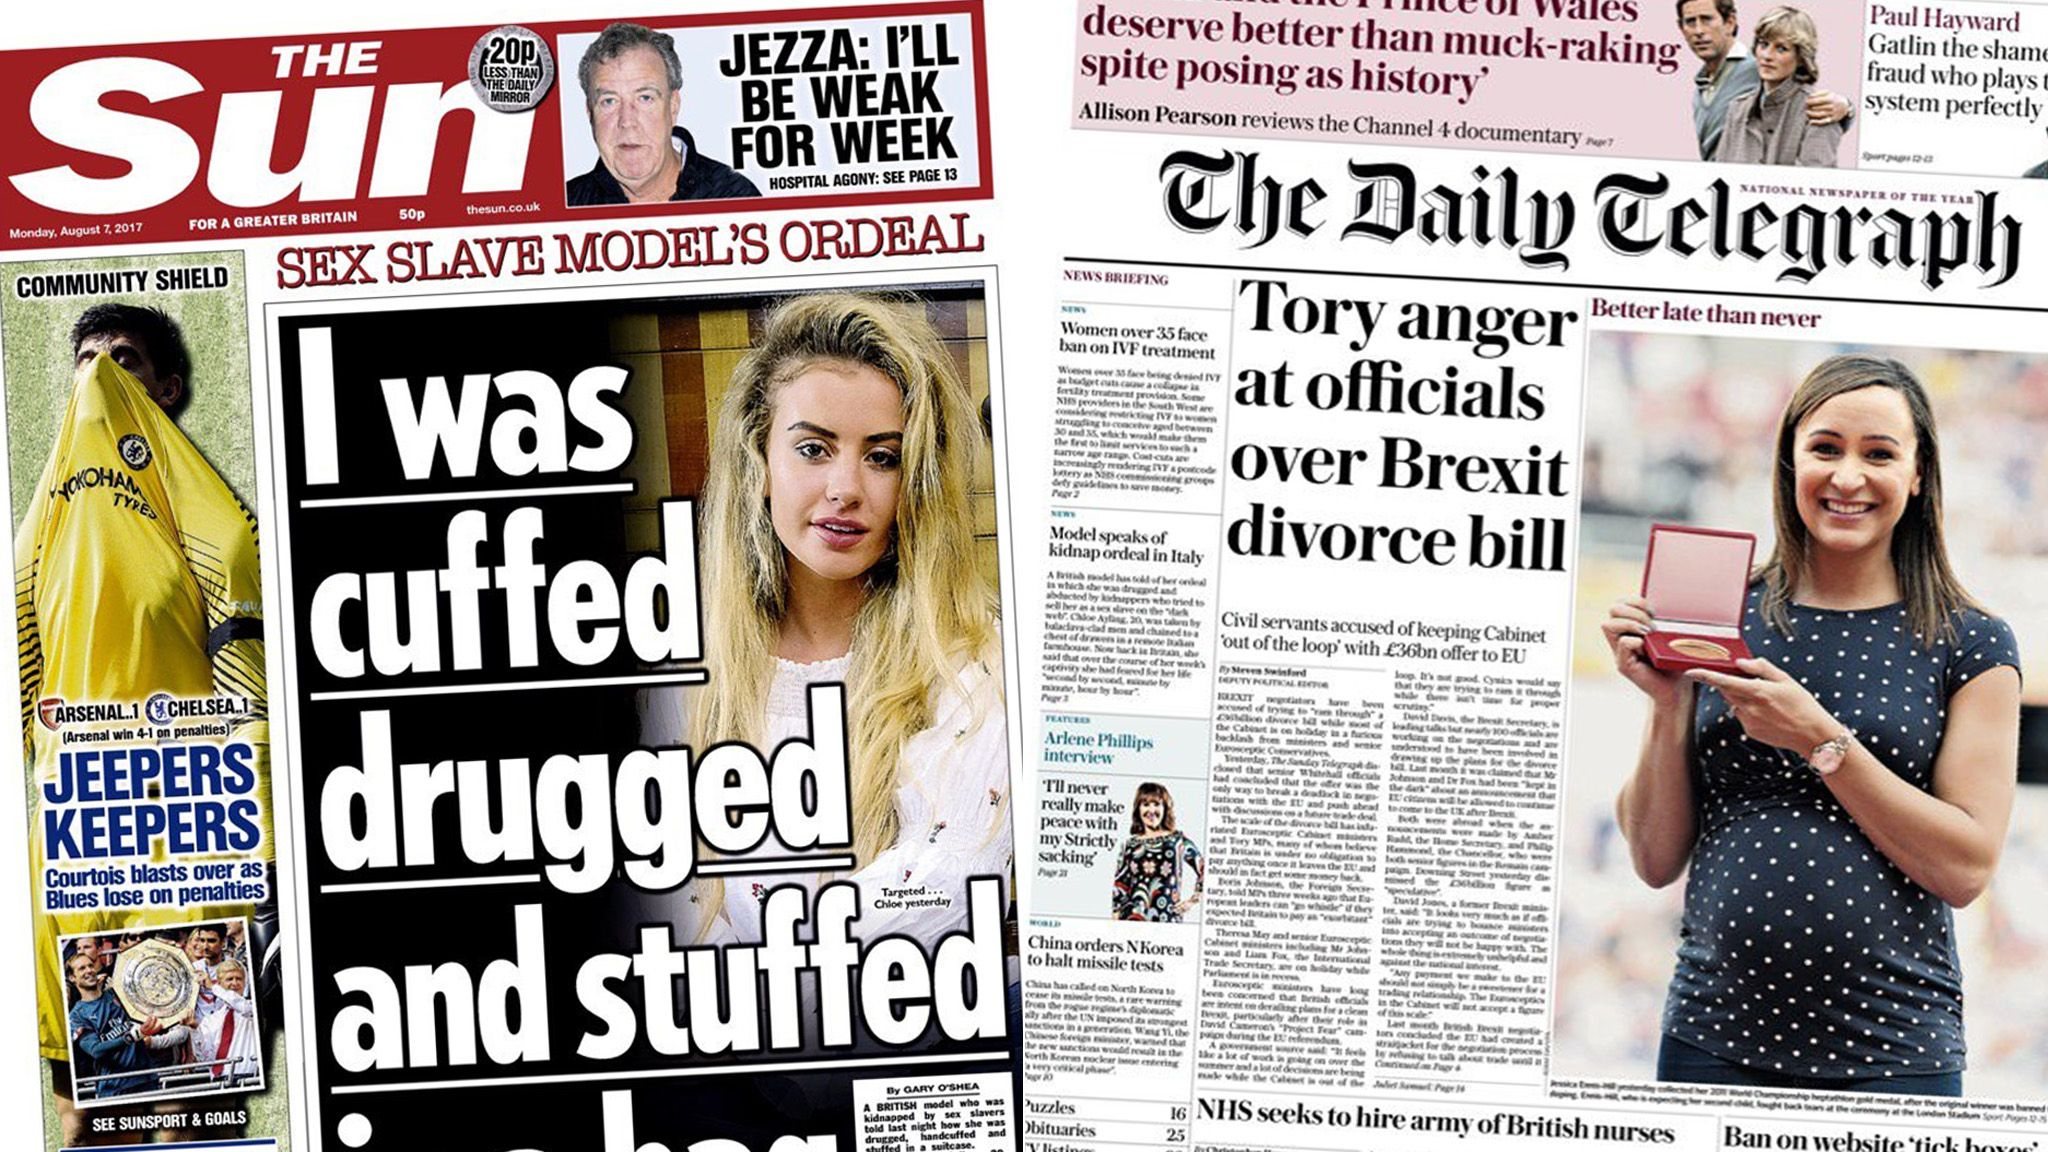 The Sun and Daily Telegraph